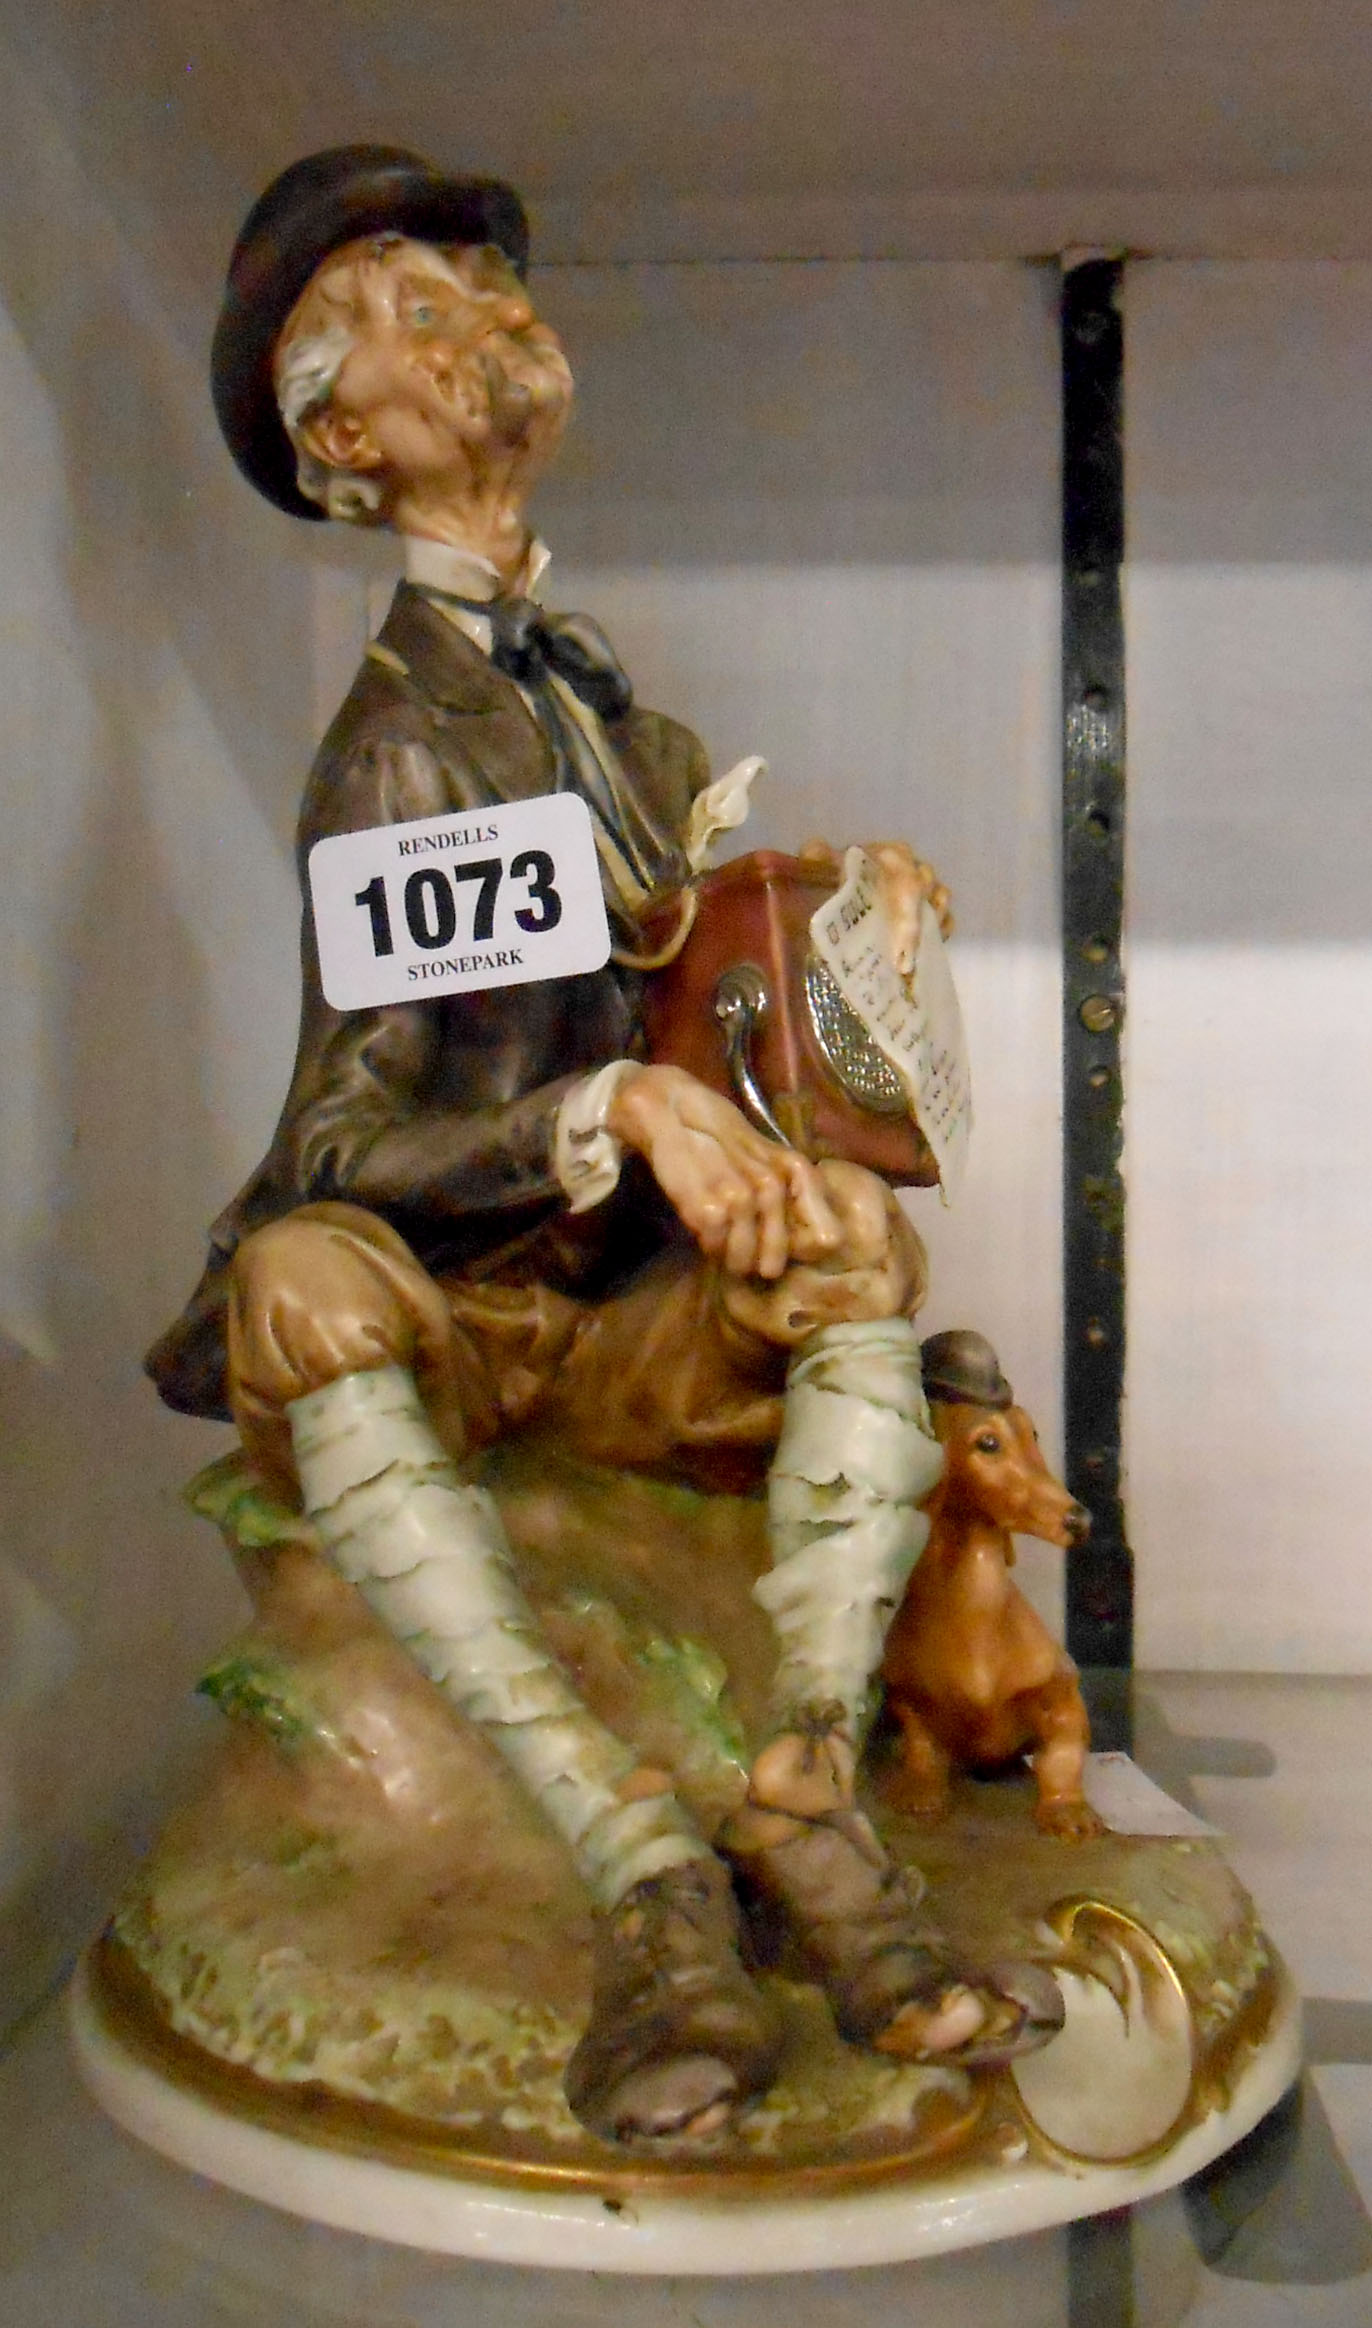 A vintage Capodimonte G. Cappe figurine of a hurdy gurdy man